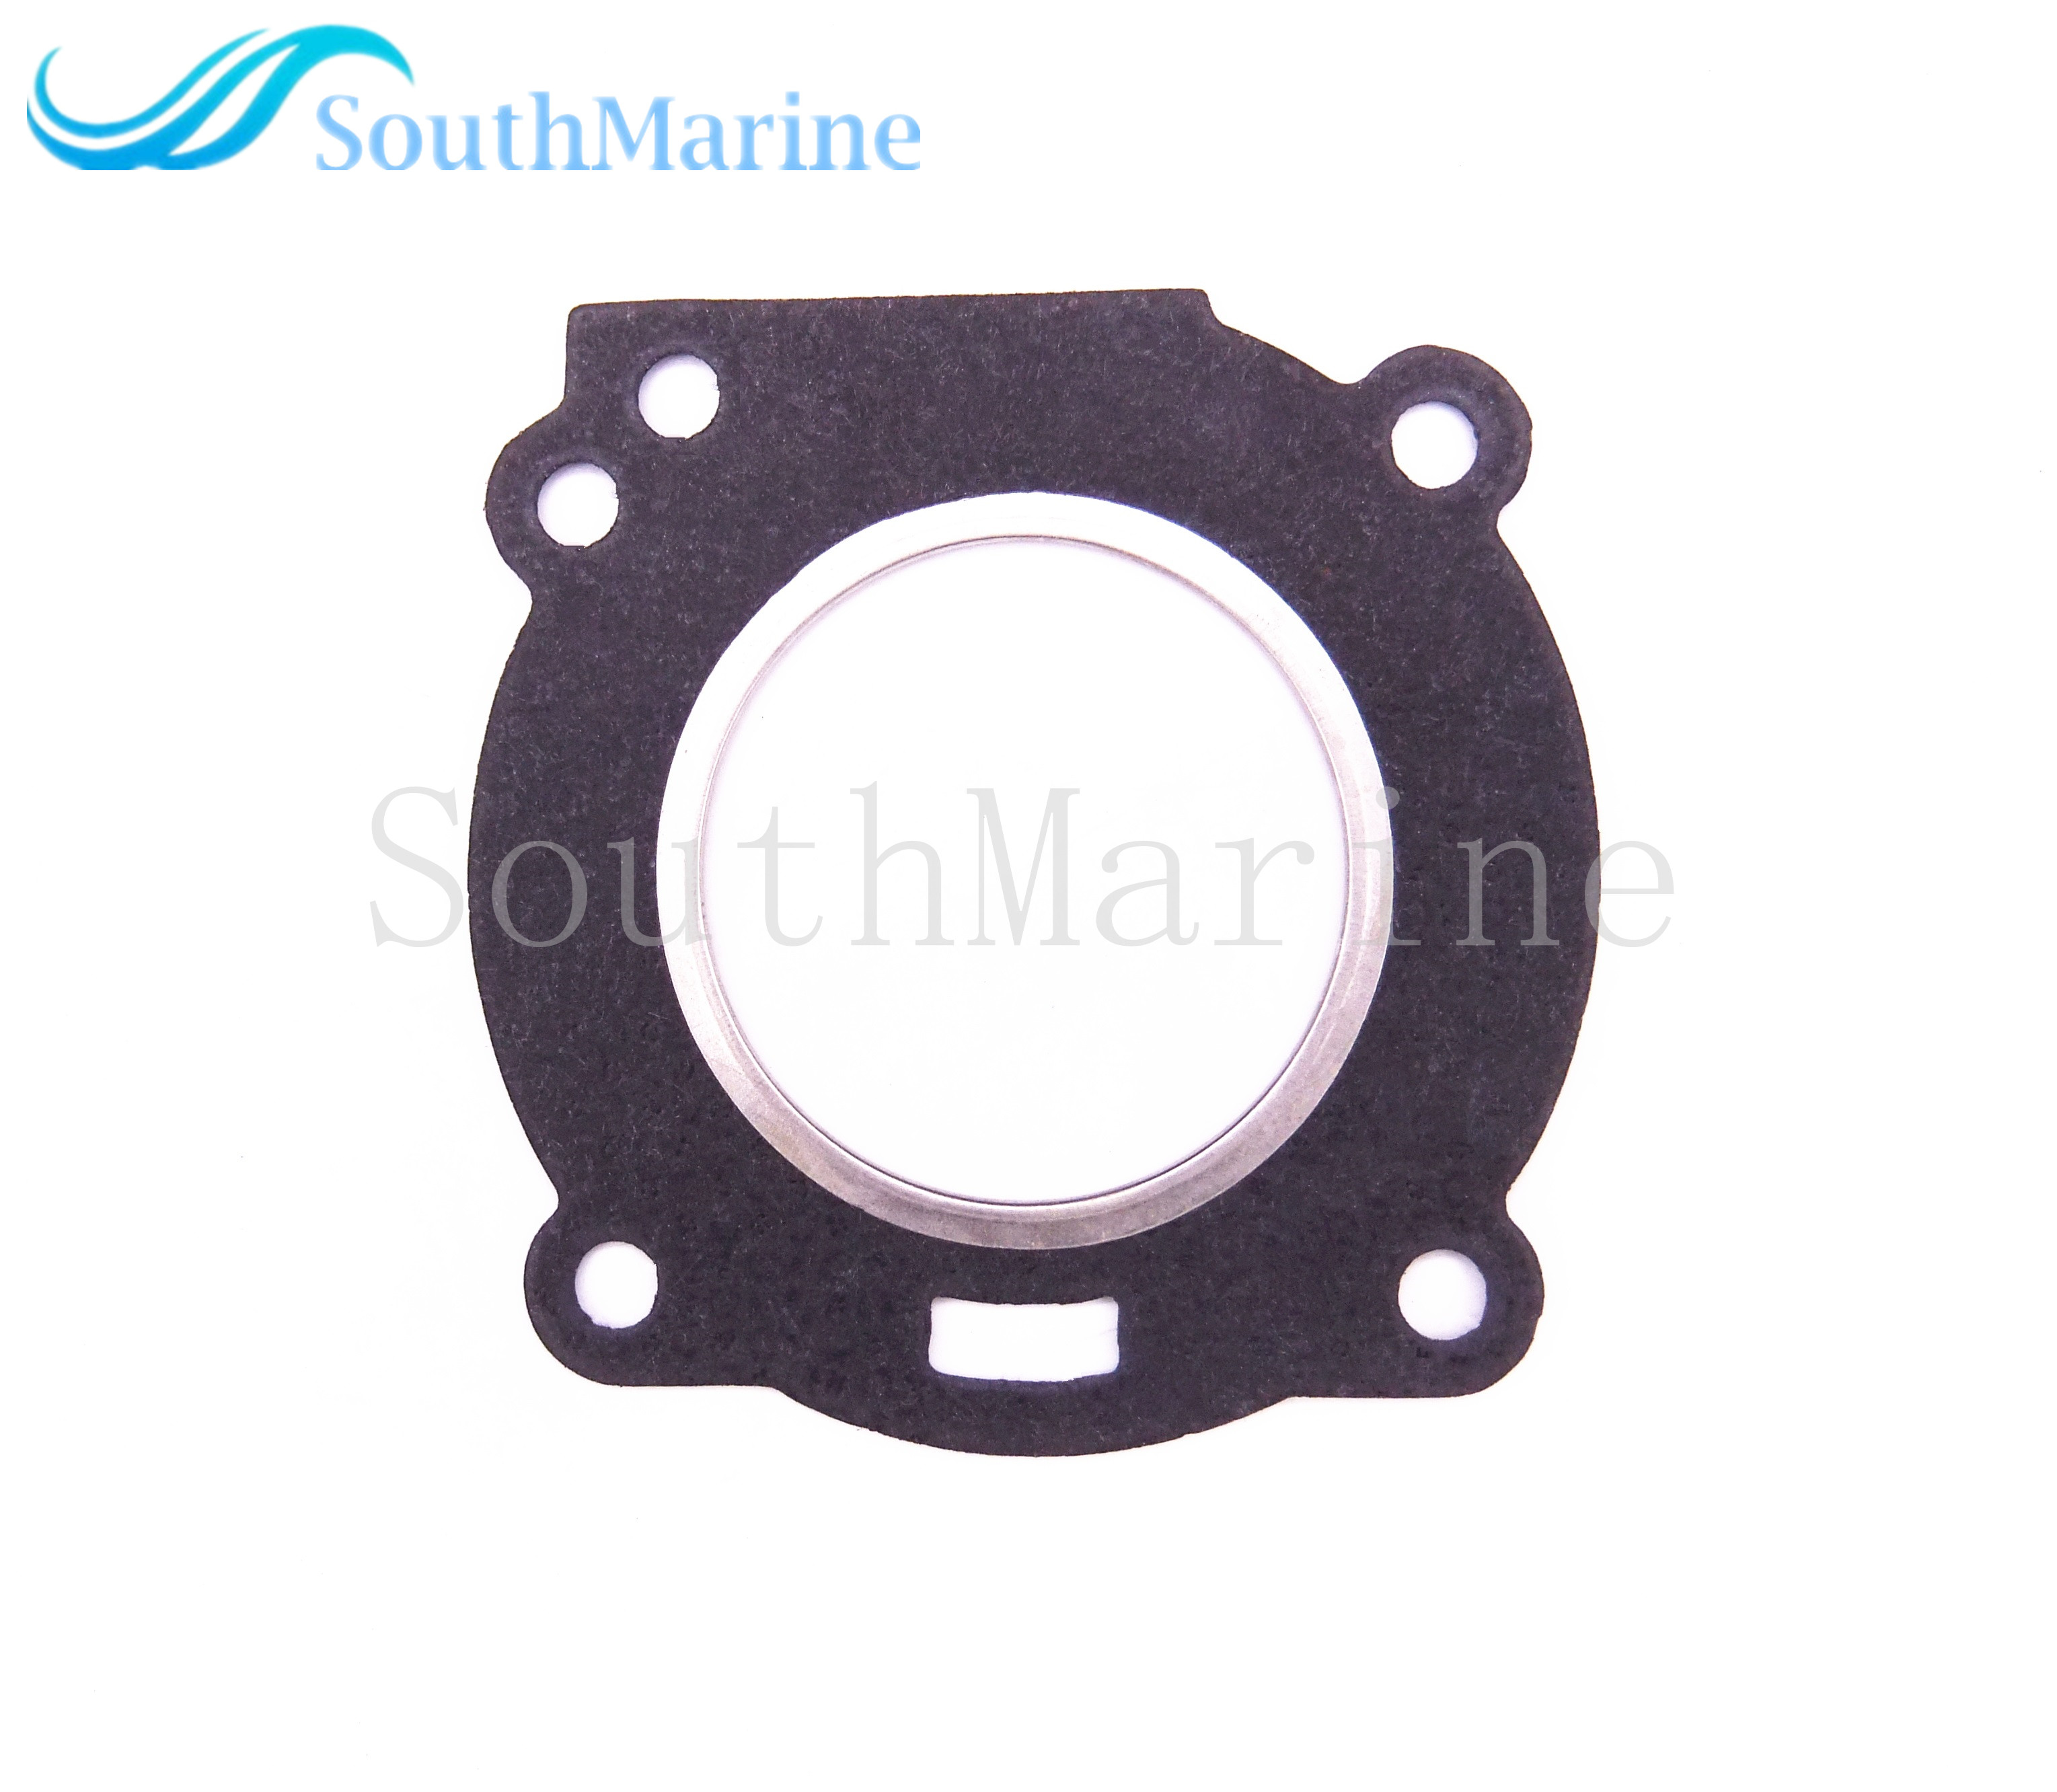 Boat Motor 95299 27-95299 27-95299001 Cylinder Head Gasket For Mercury Marine 2-Stroke 2.2HP 2.5HP 3.3HP Outboard Engine